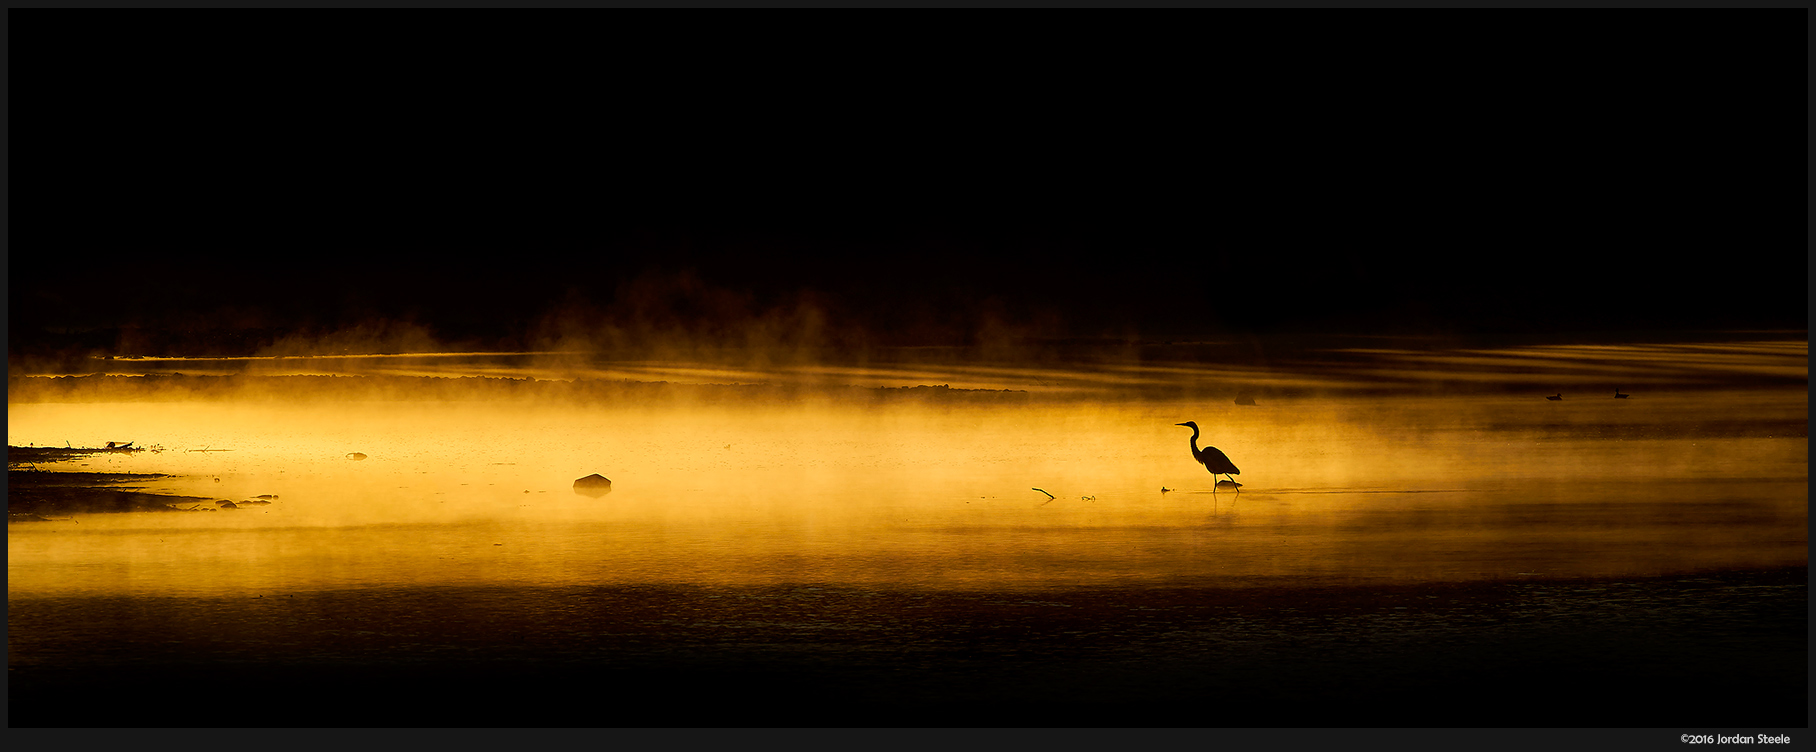 Egret in the Golden Mist - Sony A7 II with Canon EF 70-200mm f/4L + Kenko 1.4x TC @ 280mm, f/11